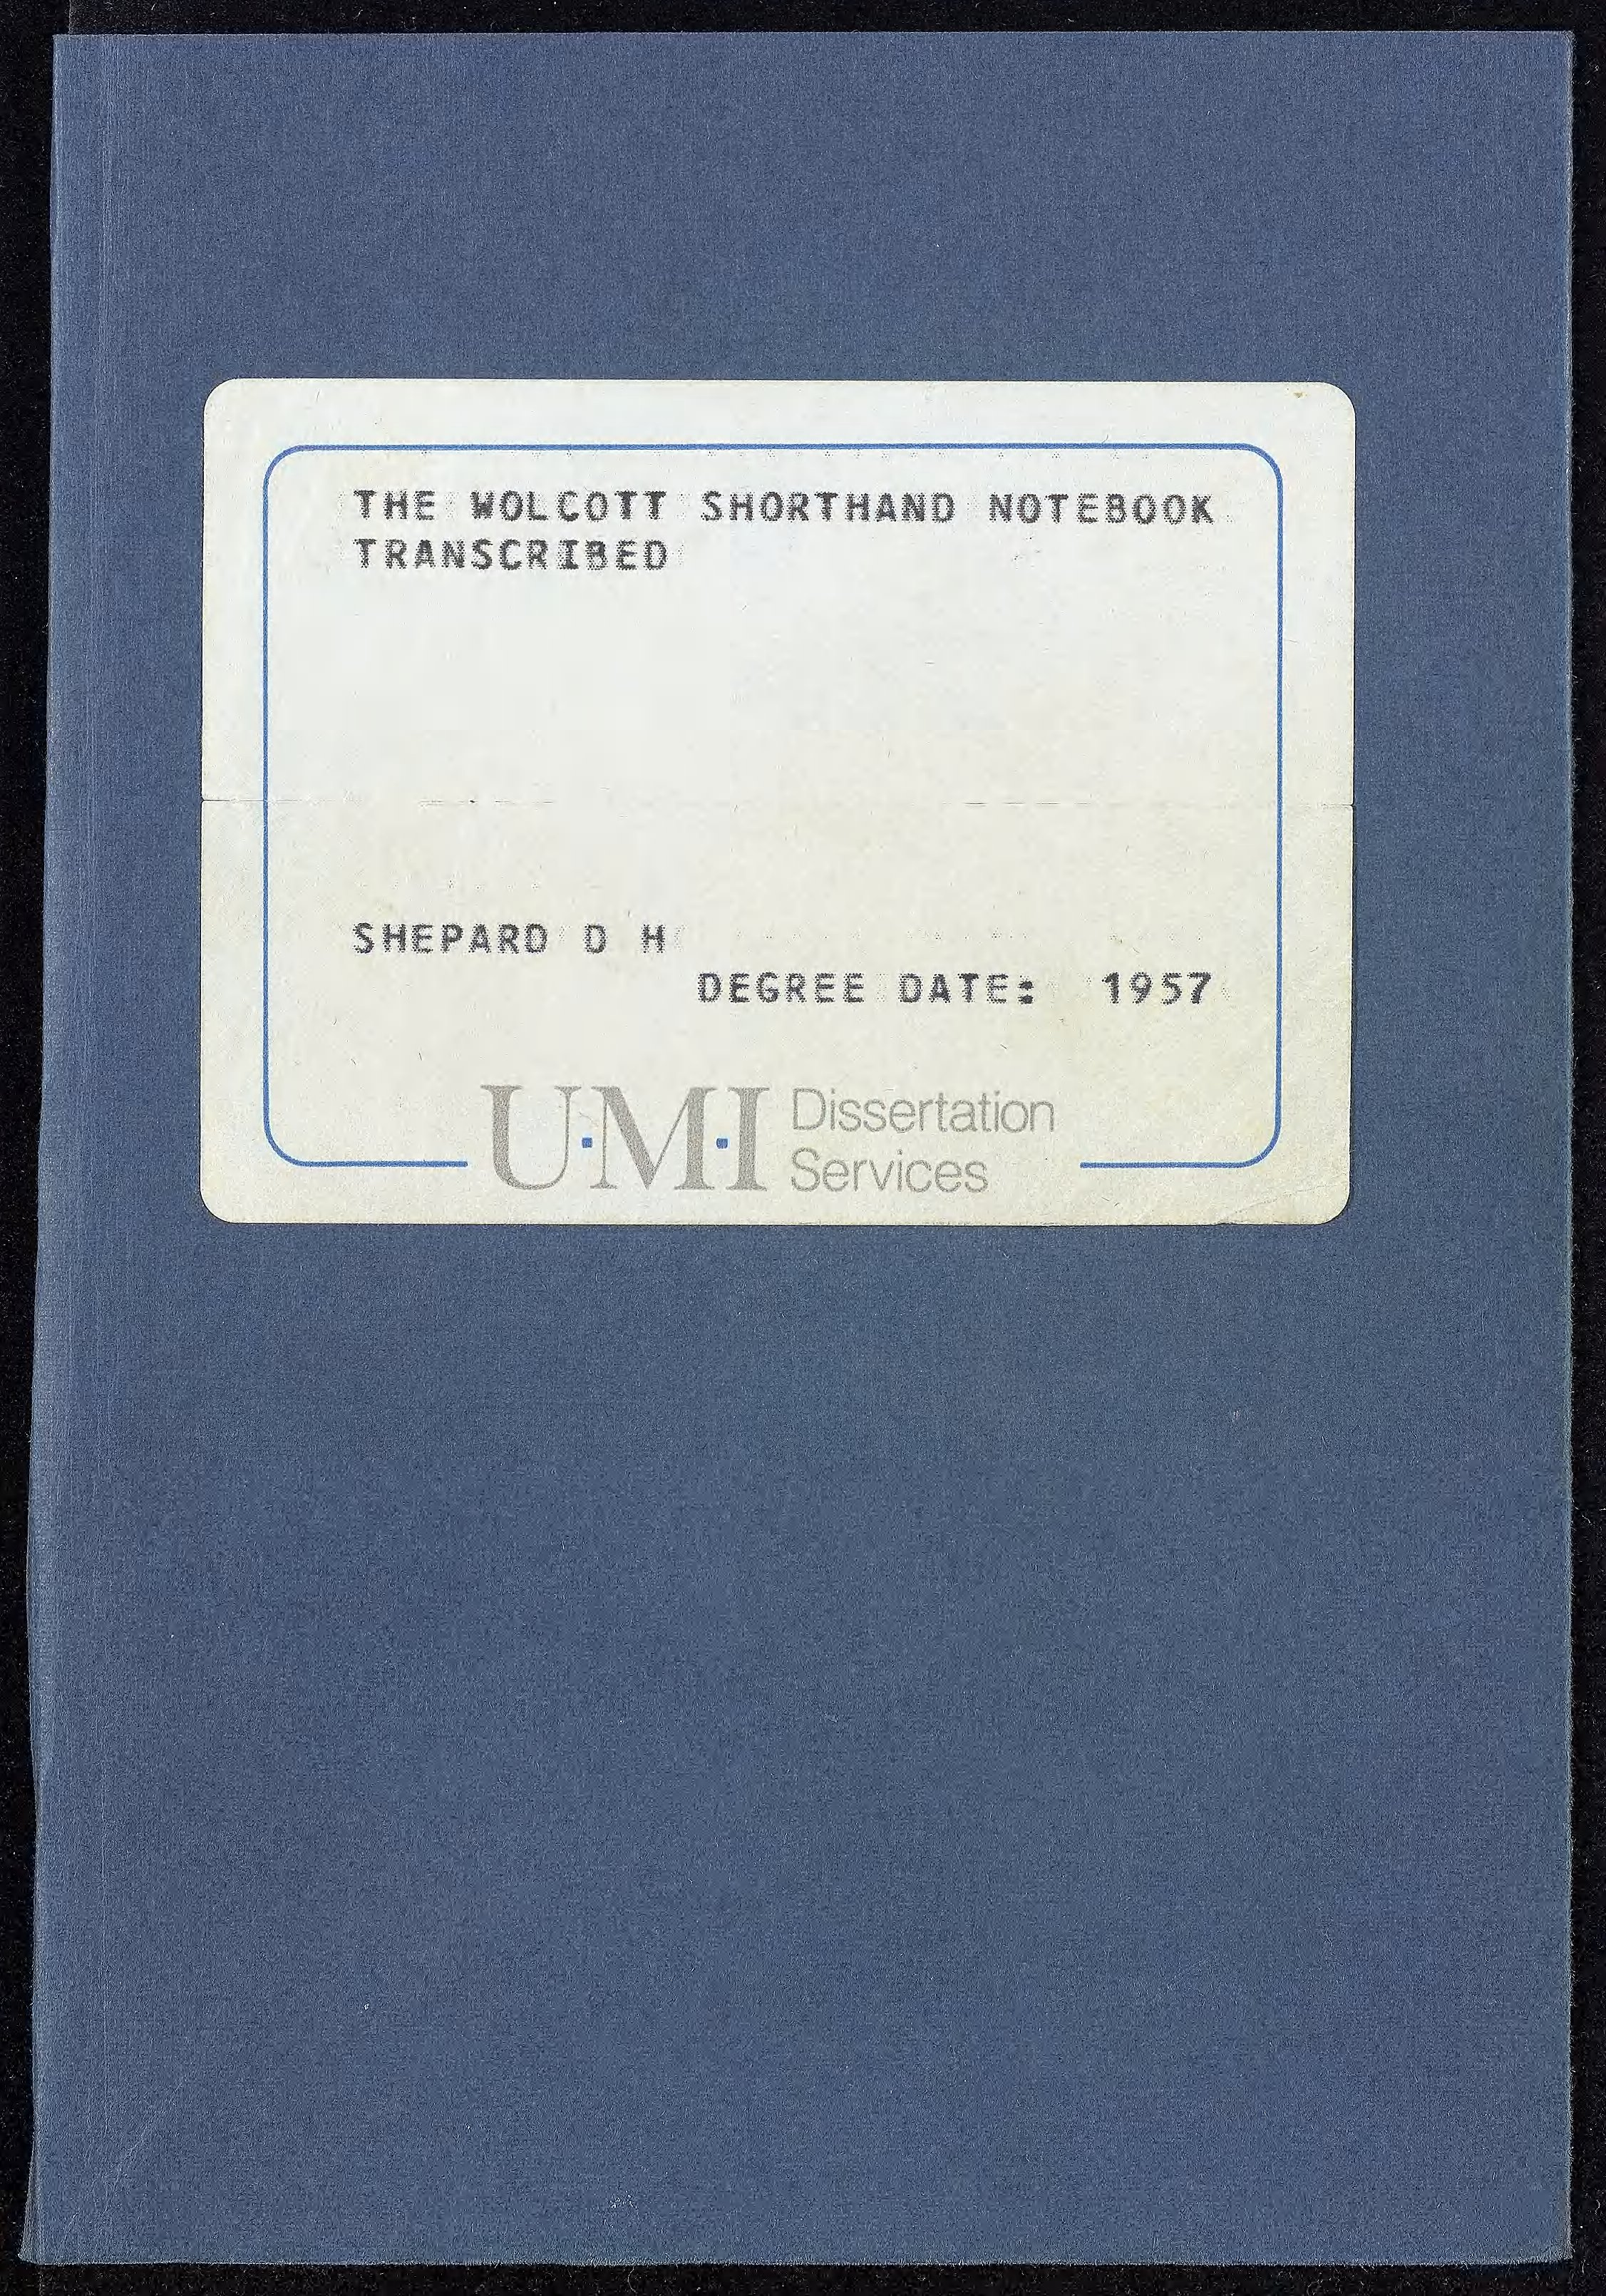 Wolcott Shorthand Notebook Transcribed